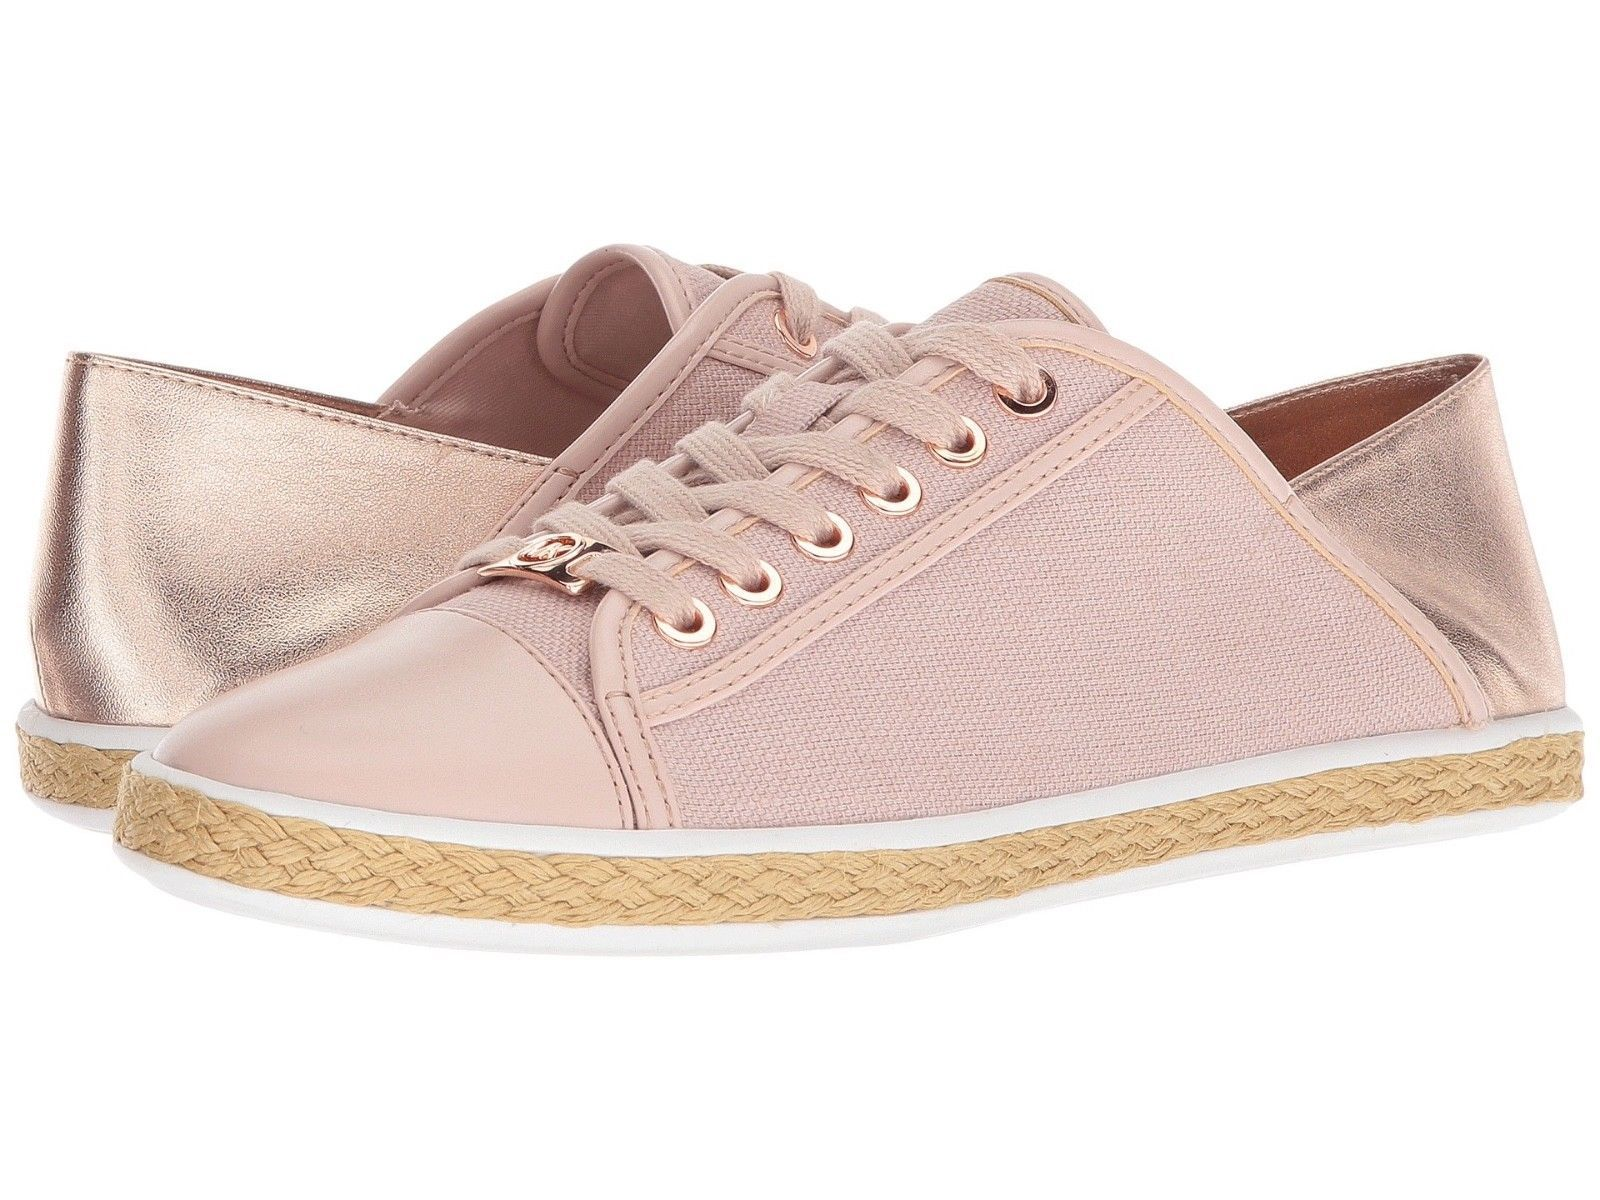 Michael Kors MK Women's Premium Kristy Slide Fashion Sneakers Shoes Soft Pink